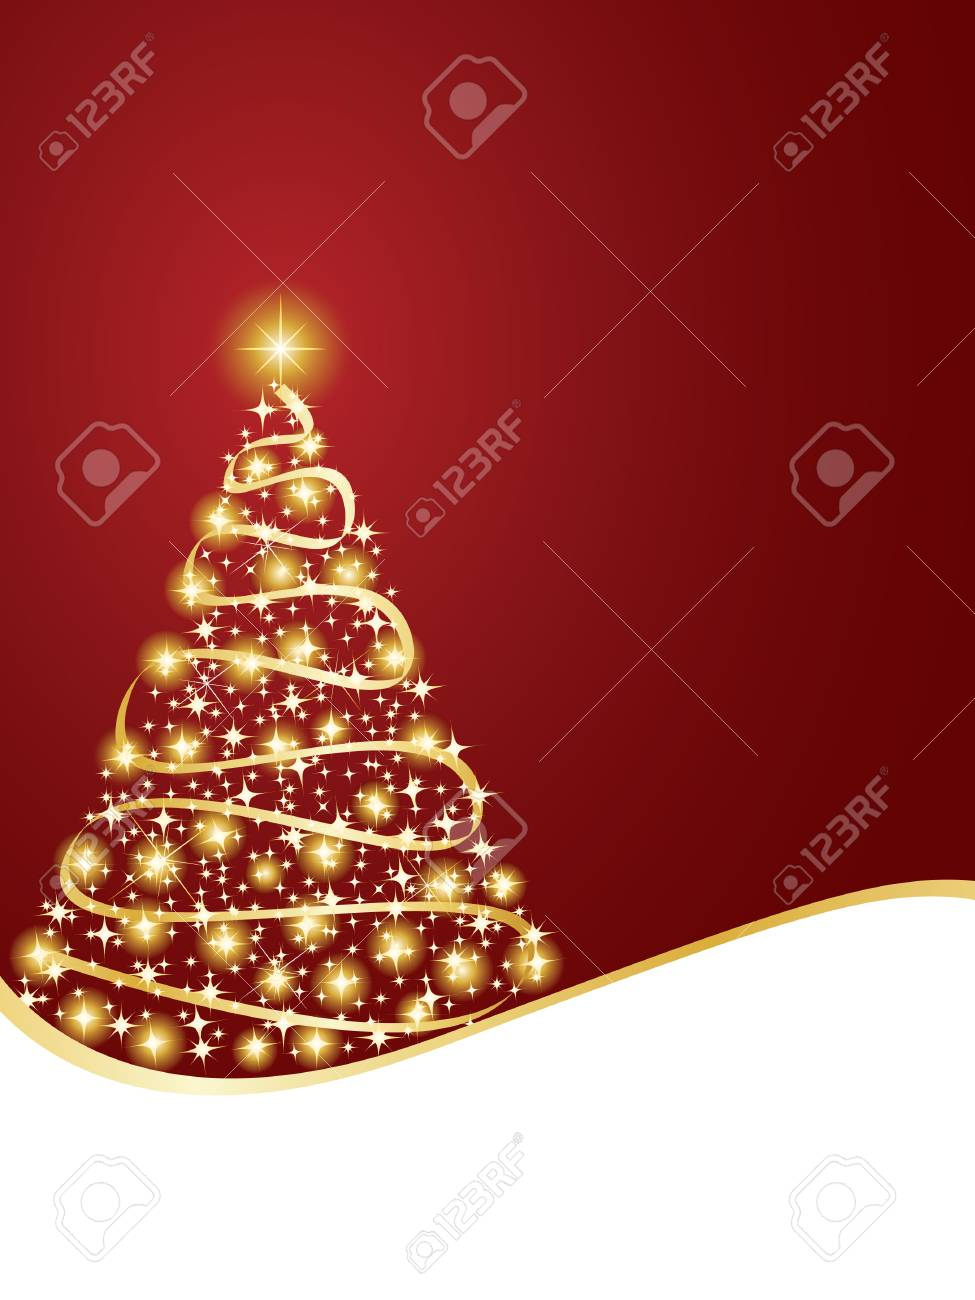 promo code 81376 0db7a Twinkly christmas tree background